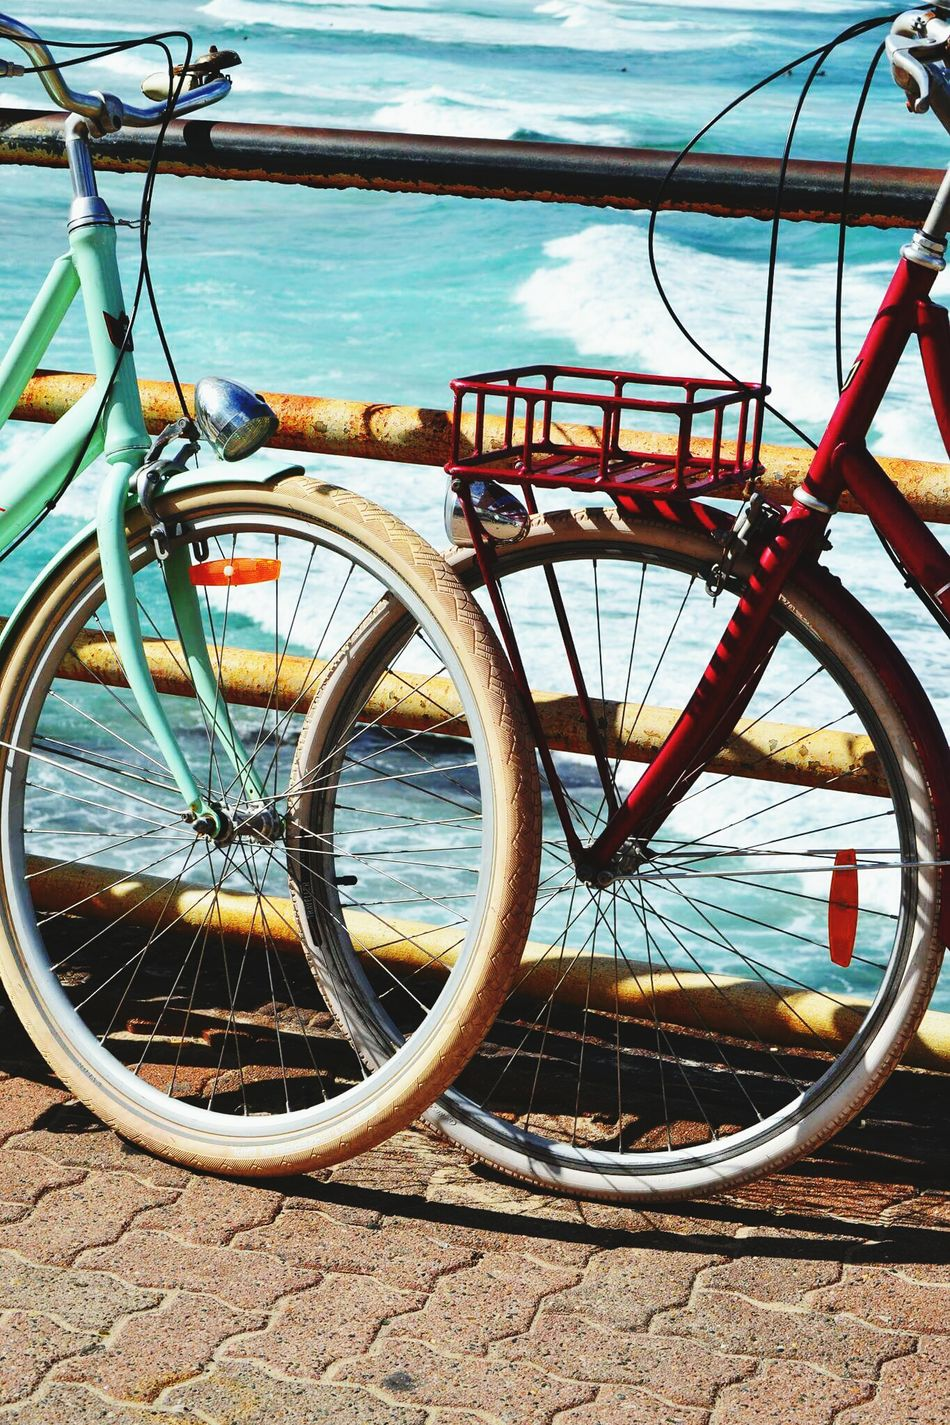 A Day At The Beach Bicycle Rack Outdoors Ocean Seaside_collection